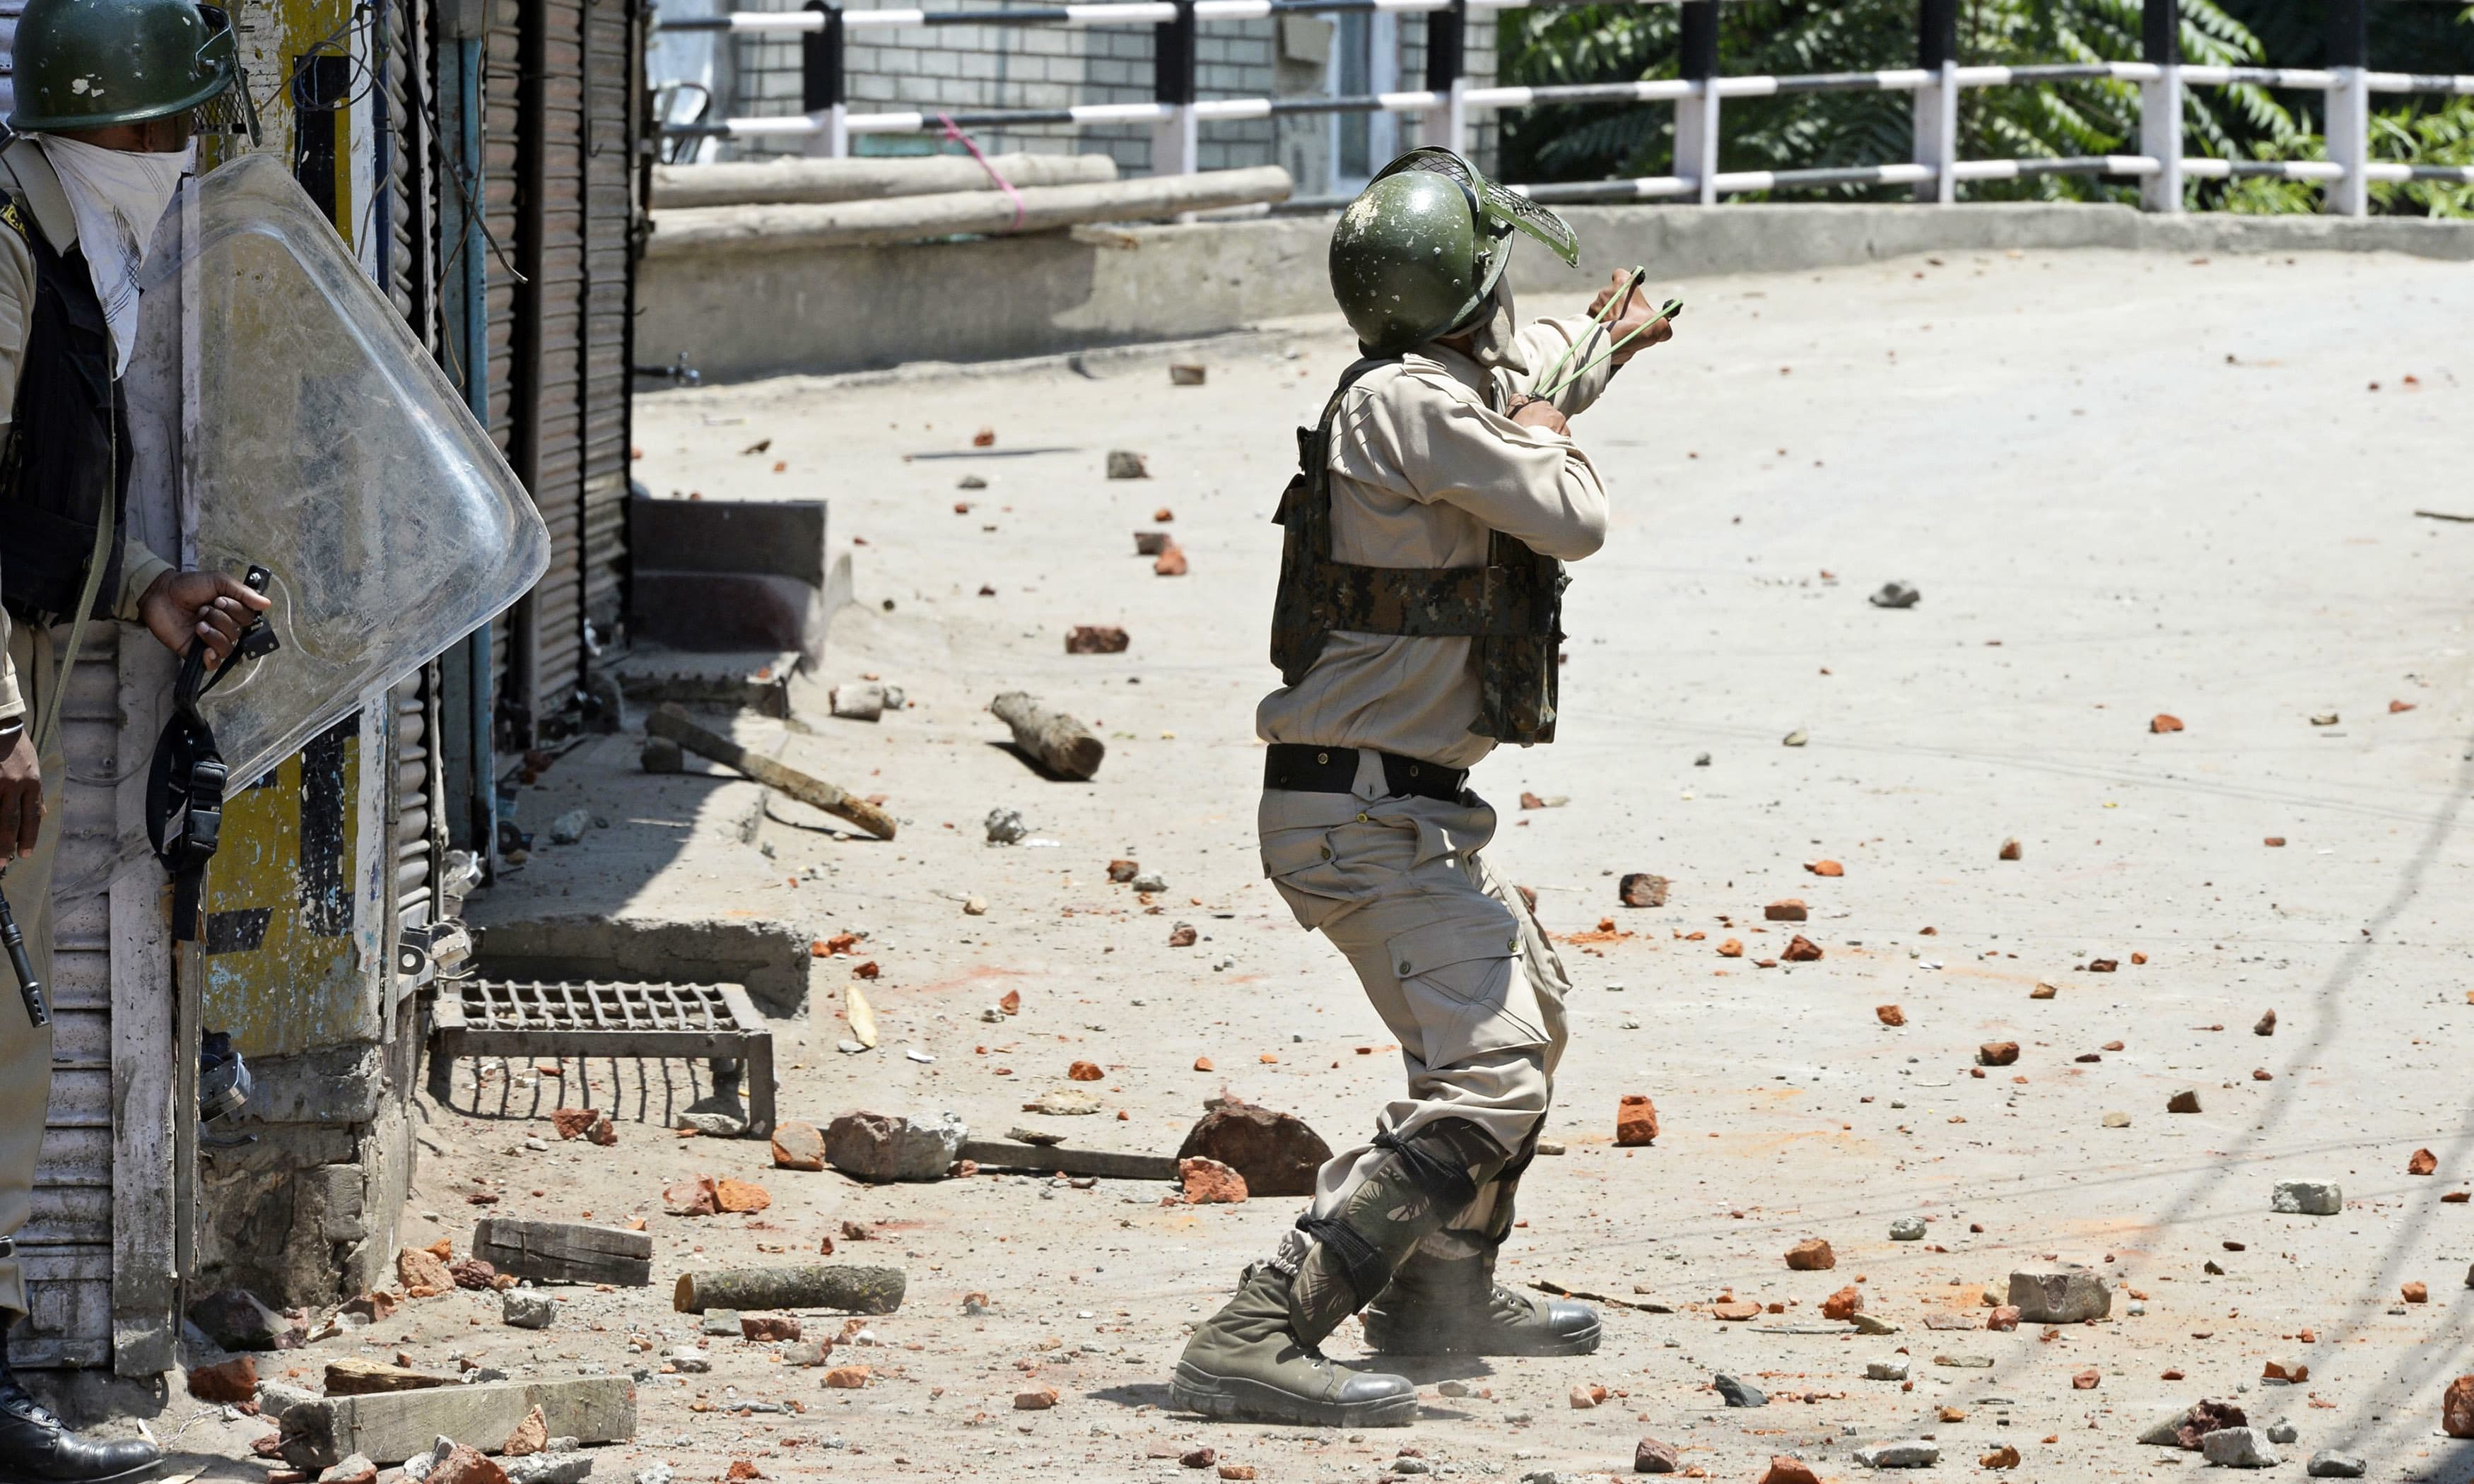 A paramilitary trooper uses a sling shot towards Kashmiri protesters in Srinagar. —AFP